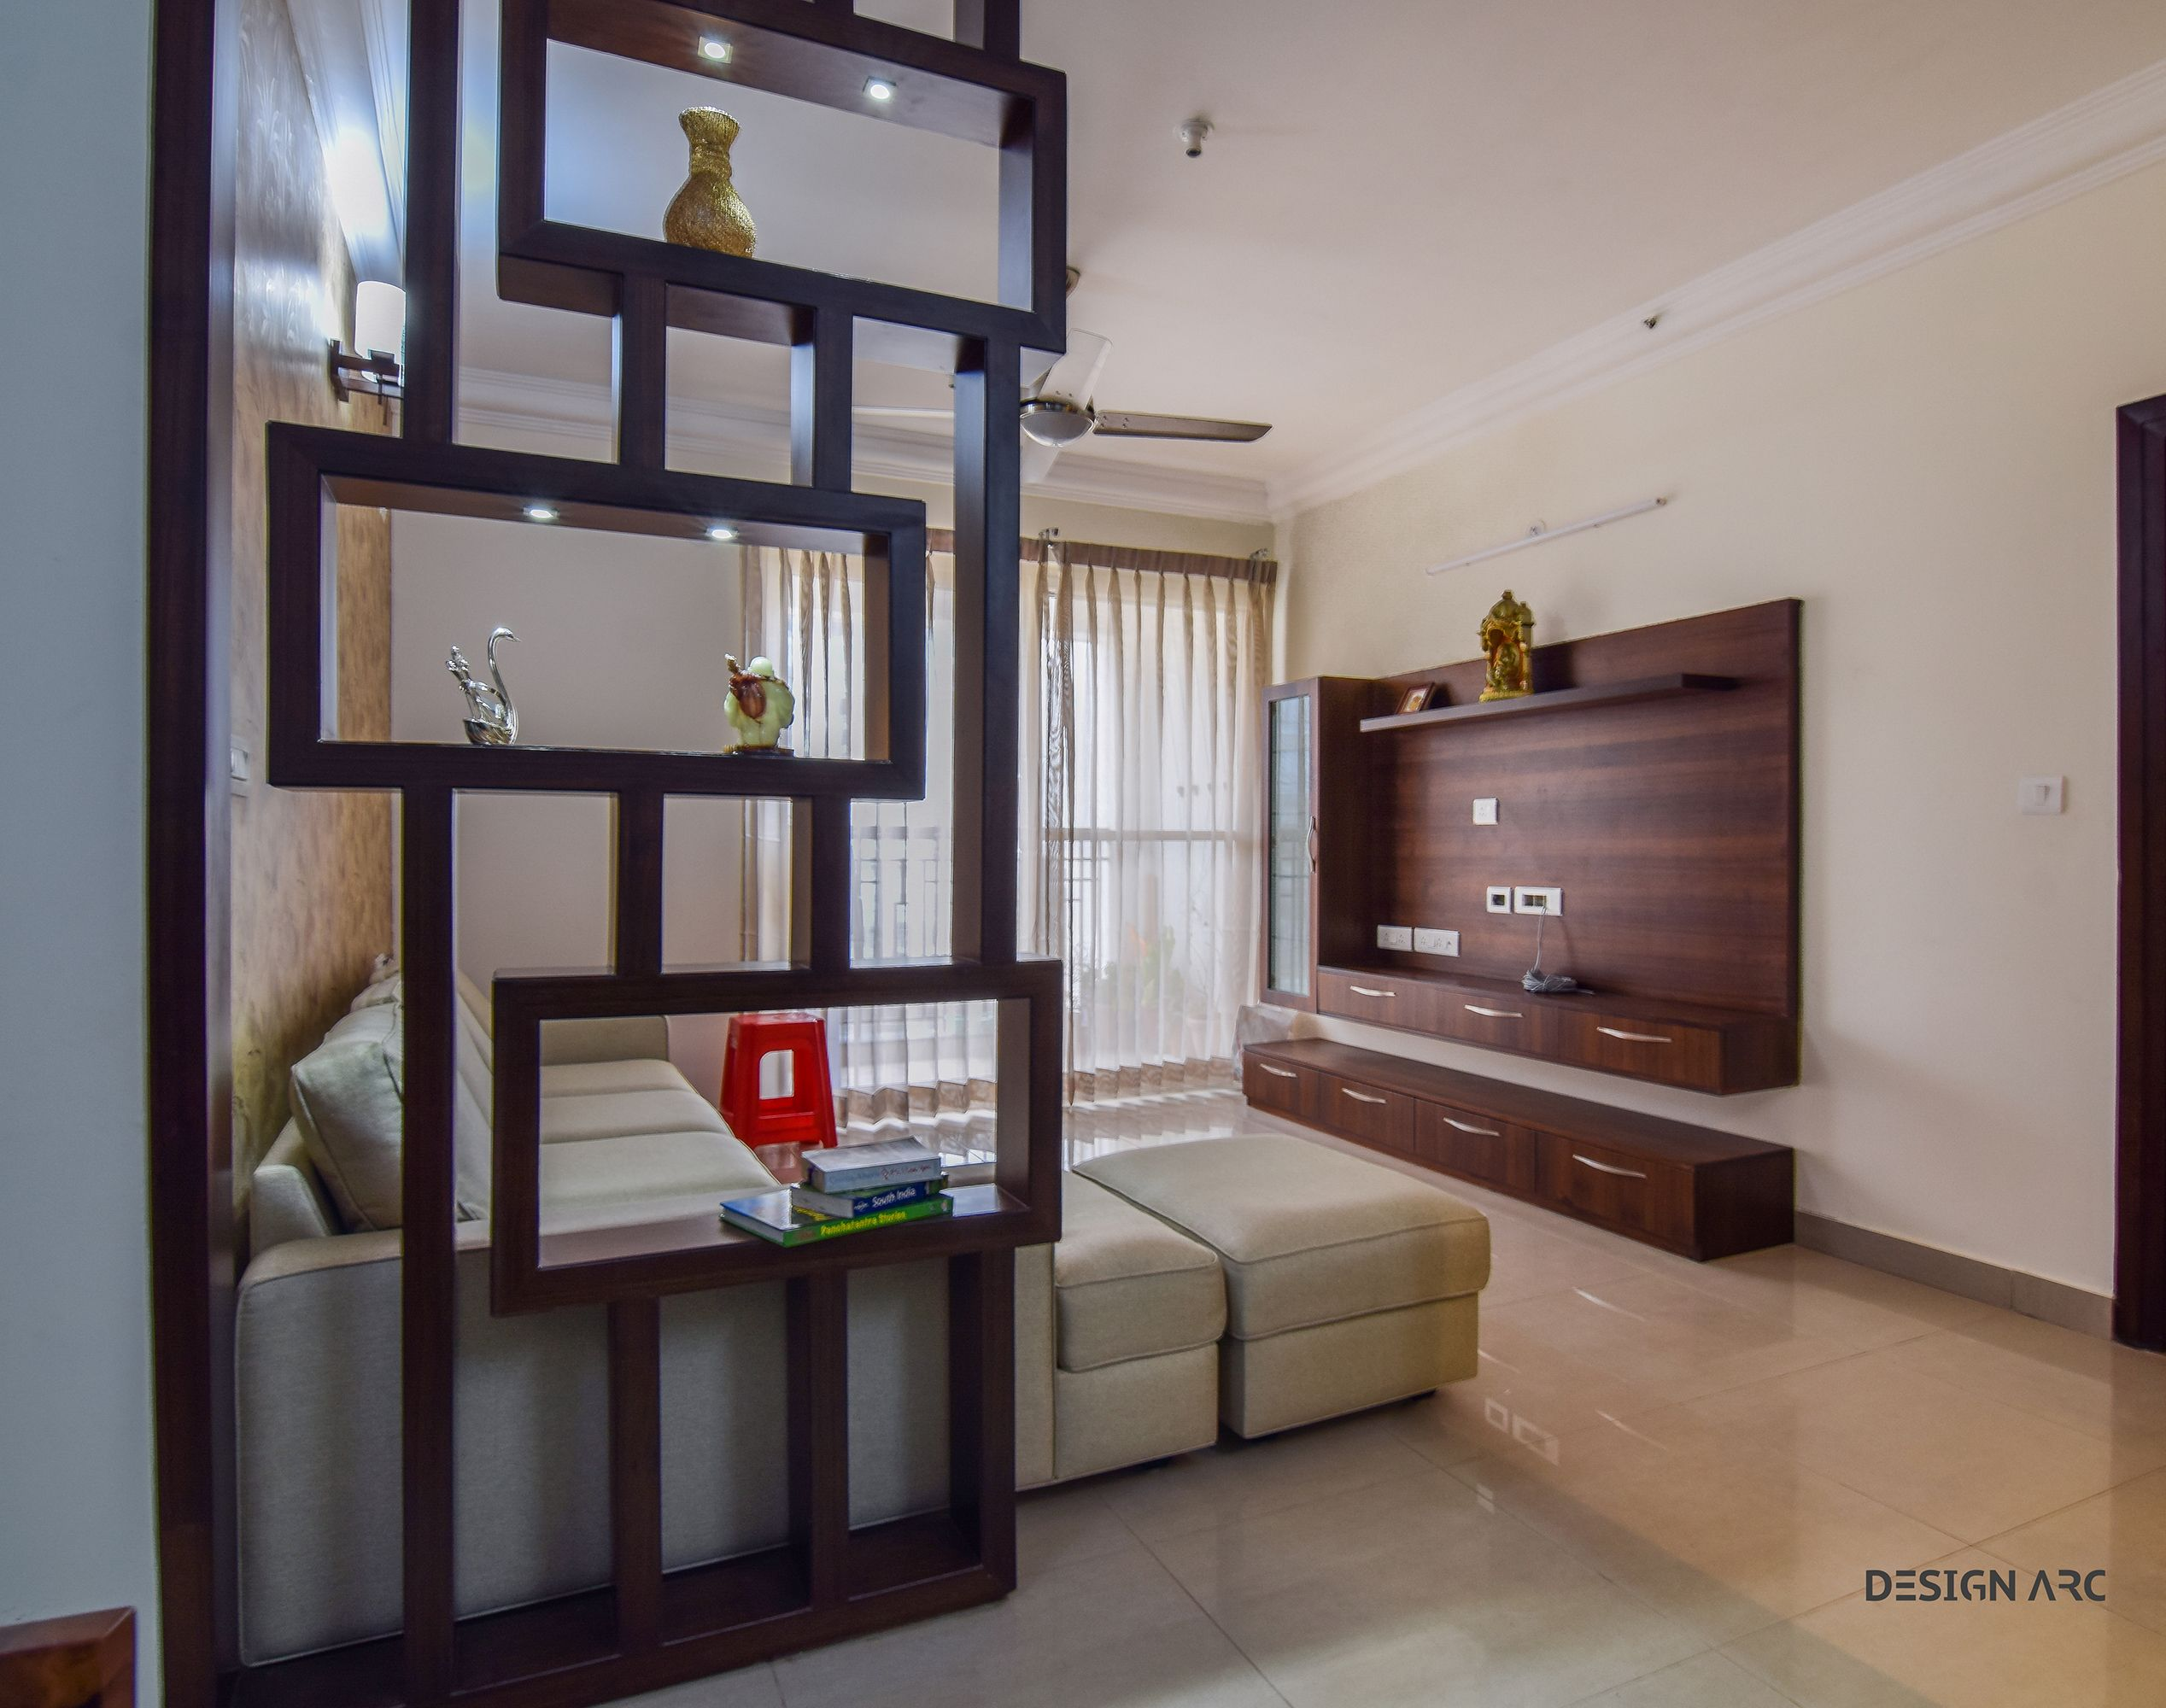 Interior design bangalore tv unit design concept living for Bedroom designs with tv unit